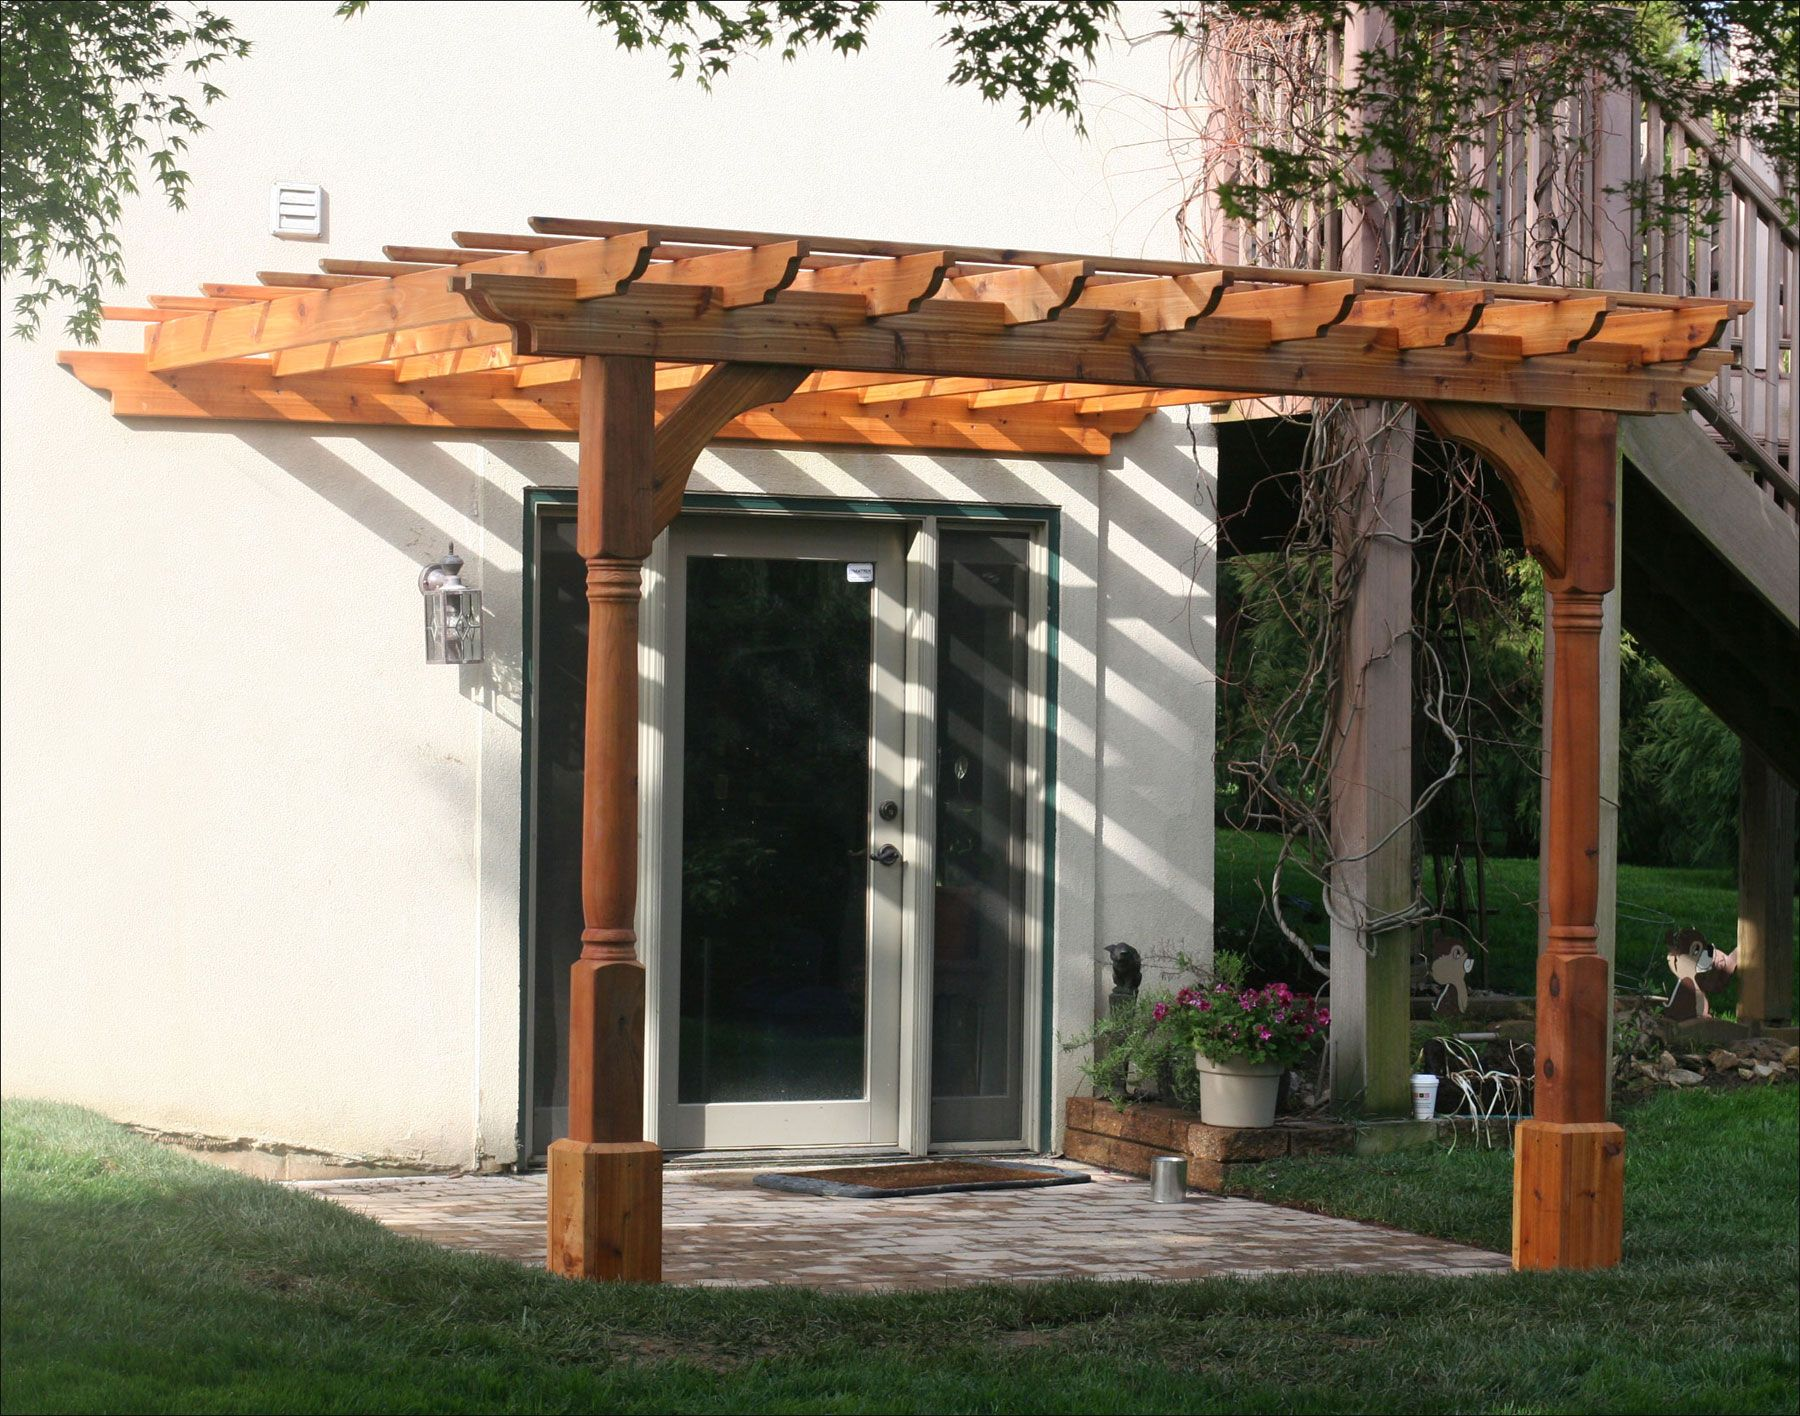 10 X 10 Cedar 2 Beam Pergola Wall Mount With Cedar Tone Stain Sealer And Decorative Posts Pergola Wall Mounted Pergola Pergola Plans Diy